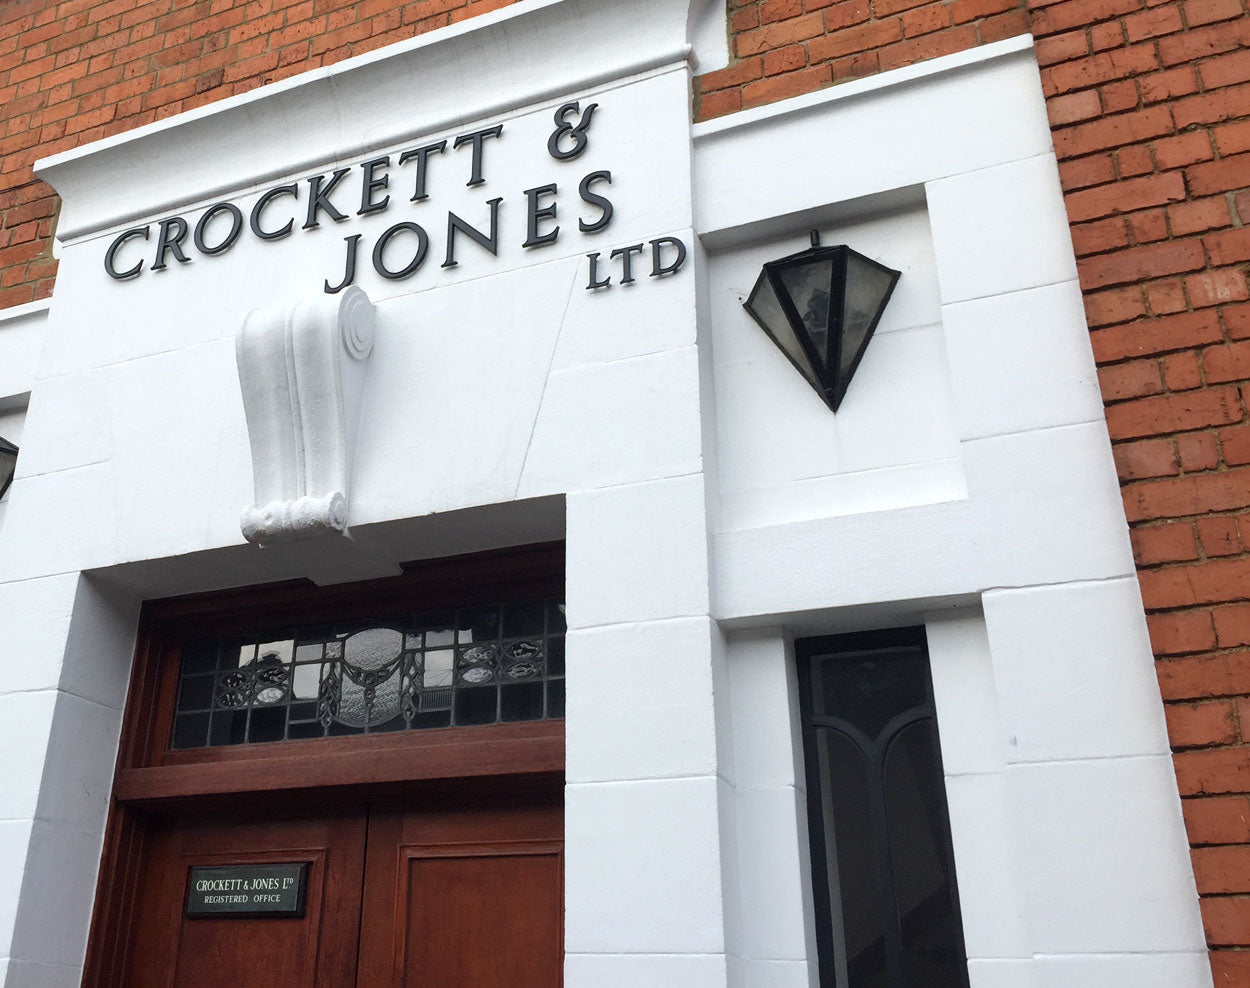 Visiting the Northampton shoe factories - Crockett & Jones